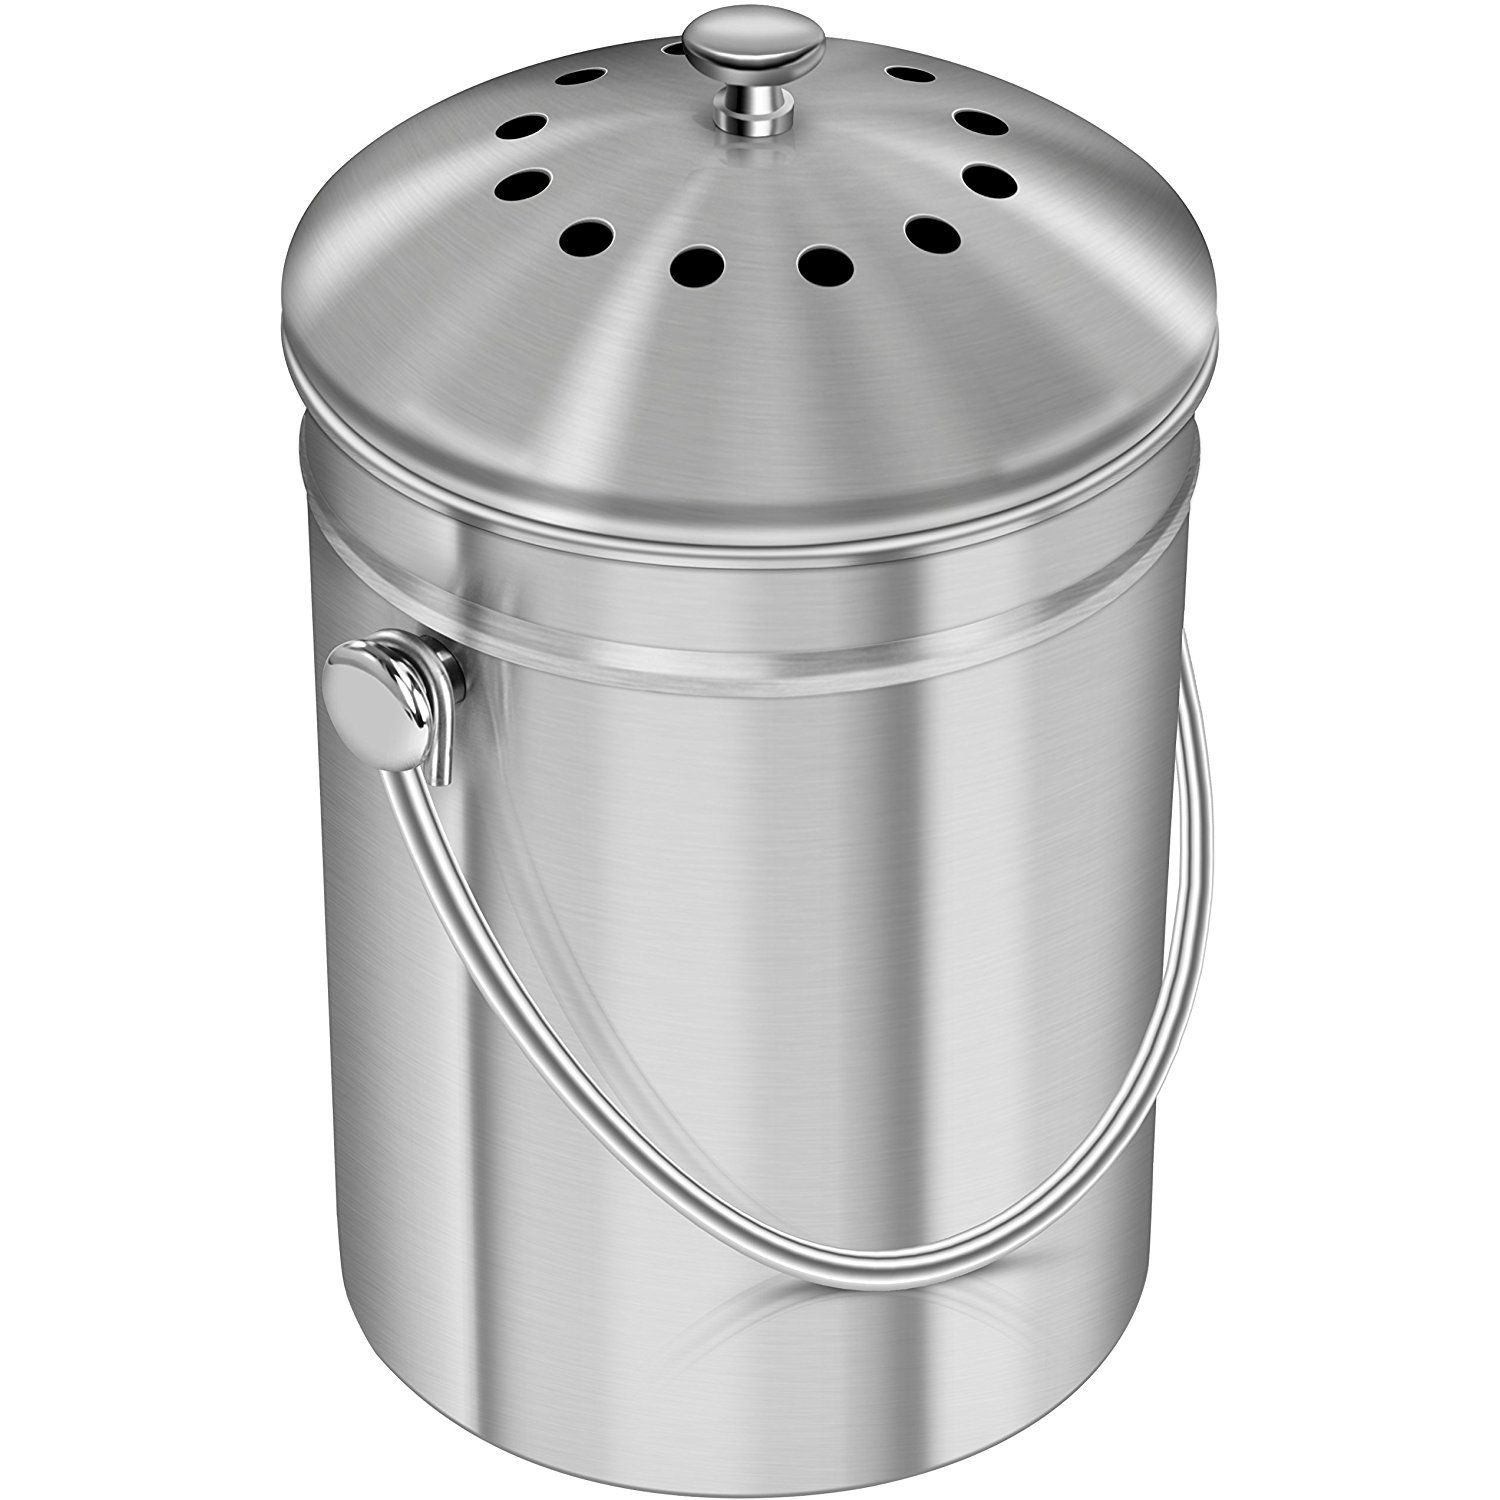 Premium Quality Stainless Steel Compost Bin 1 3 Gallon Includes Charcoal Filter Utopia Kitchen Patiolawngard Compost Bucket Kitchen Compost Bin Compost Bin